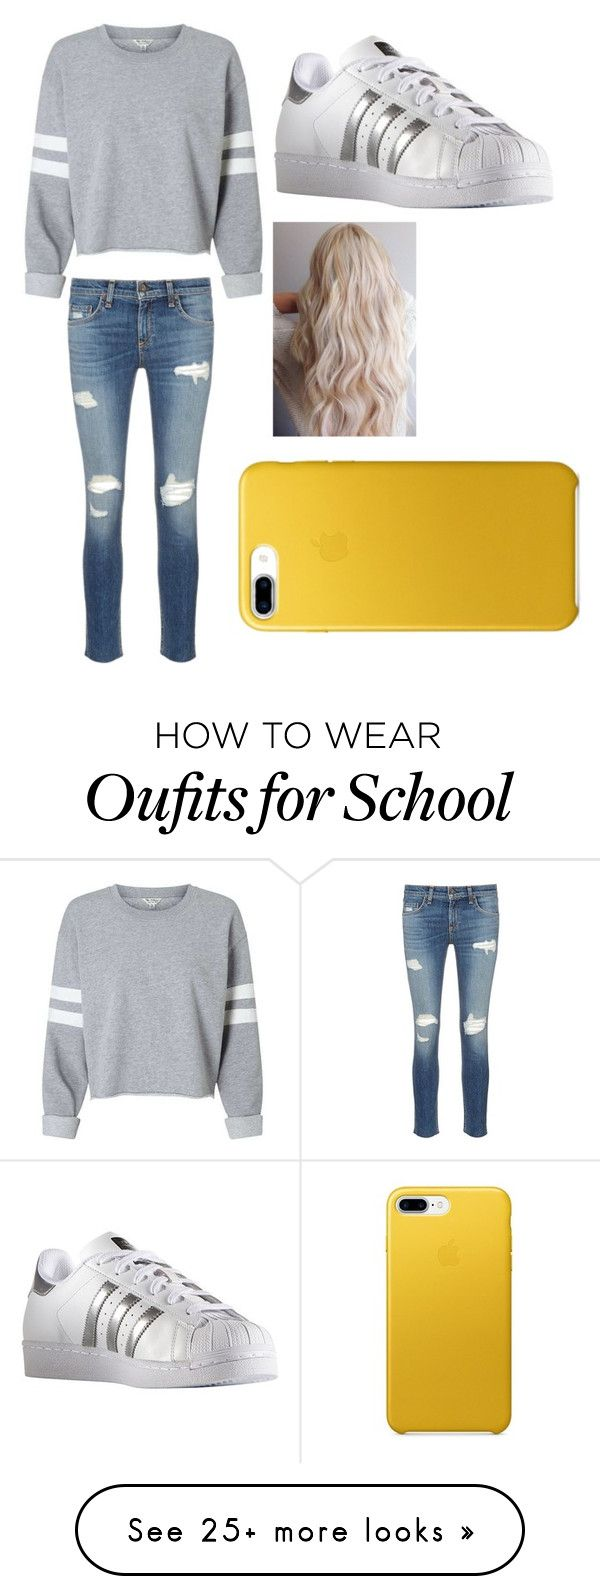 """""""School #1"""" by phoperowland on Polyvore featuring rag & bone/JEAN and adidas"""